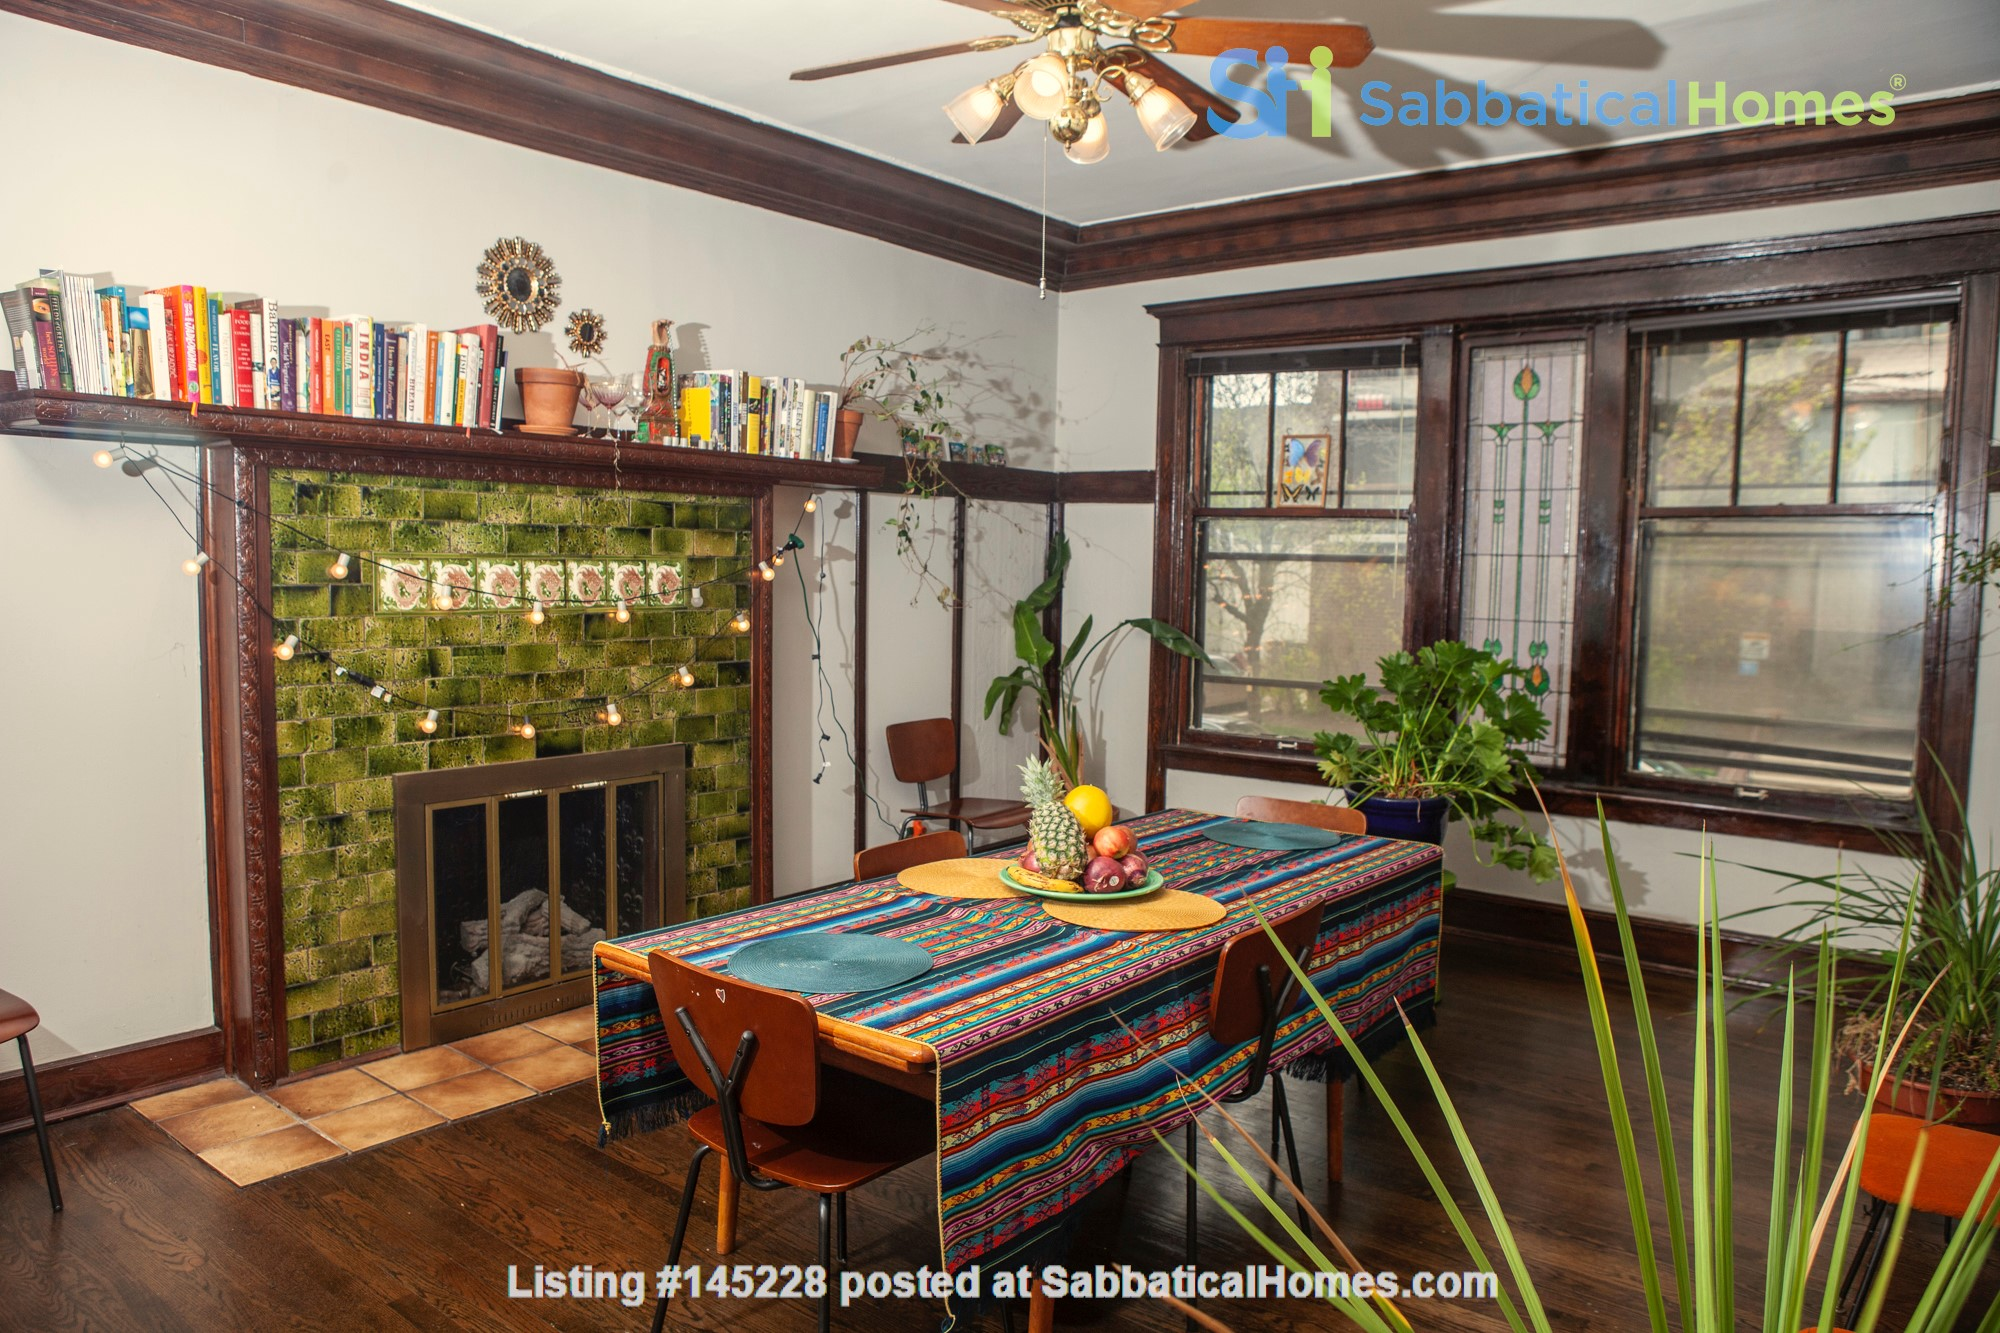 Family-ready 3bed/2bath with front porch & back garden a walk from the lake Home Rental in Chicago, Illinois, United States 1